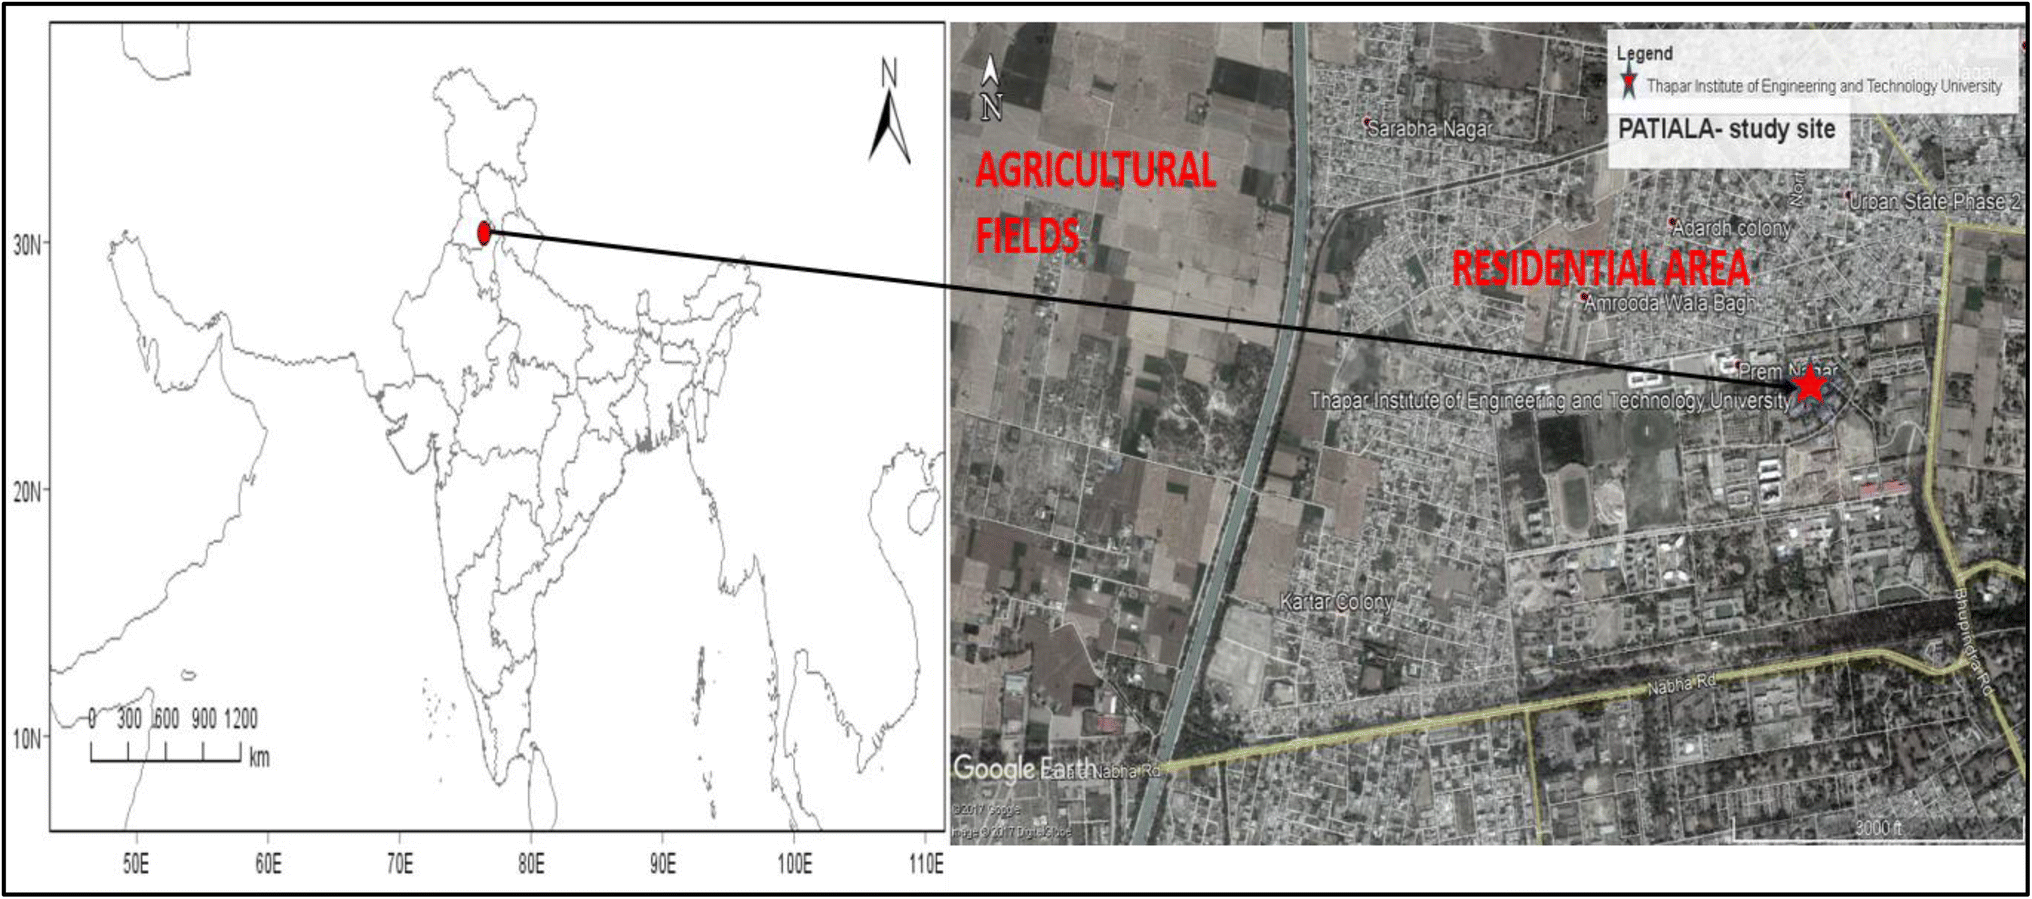 Enhanced Ozone Production in Ambient Air at Patiala Semi-Urban Site